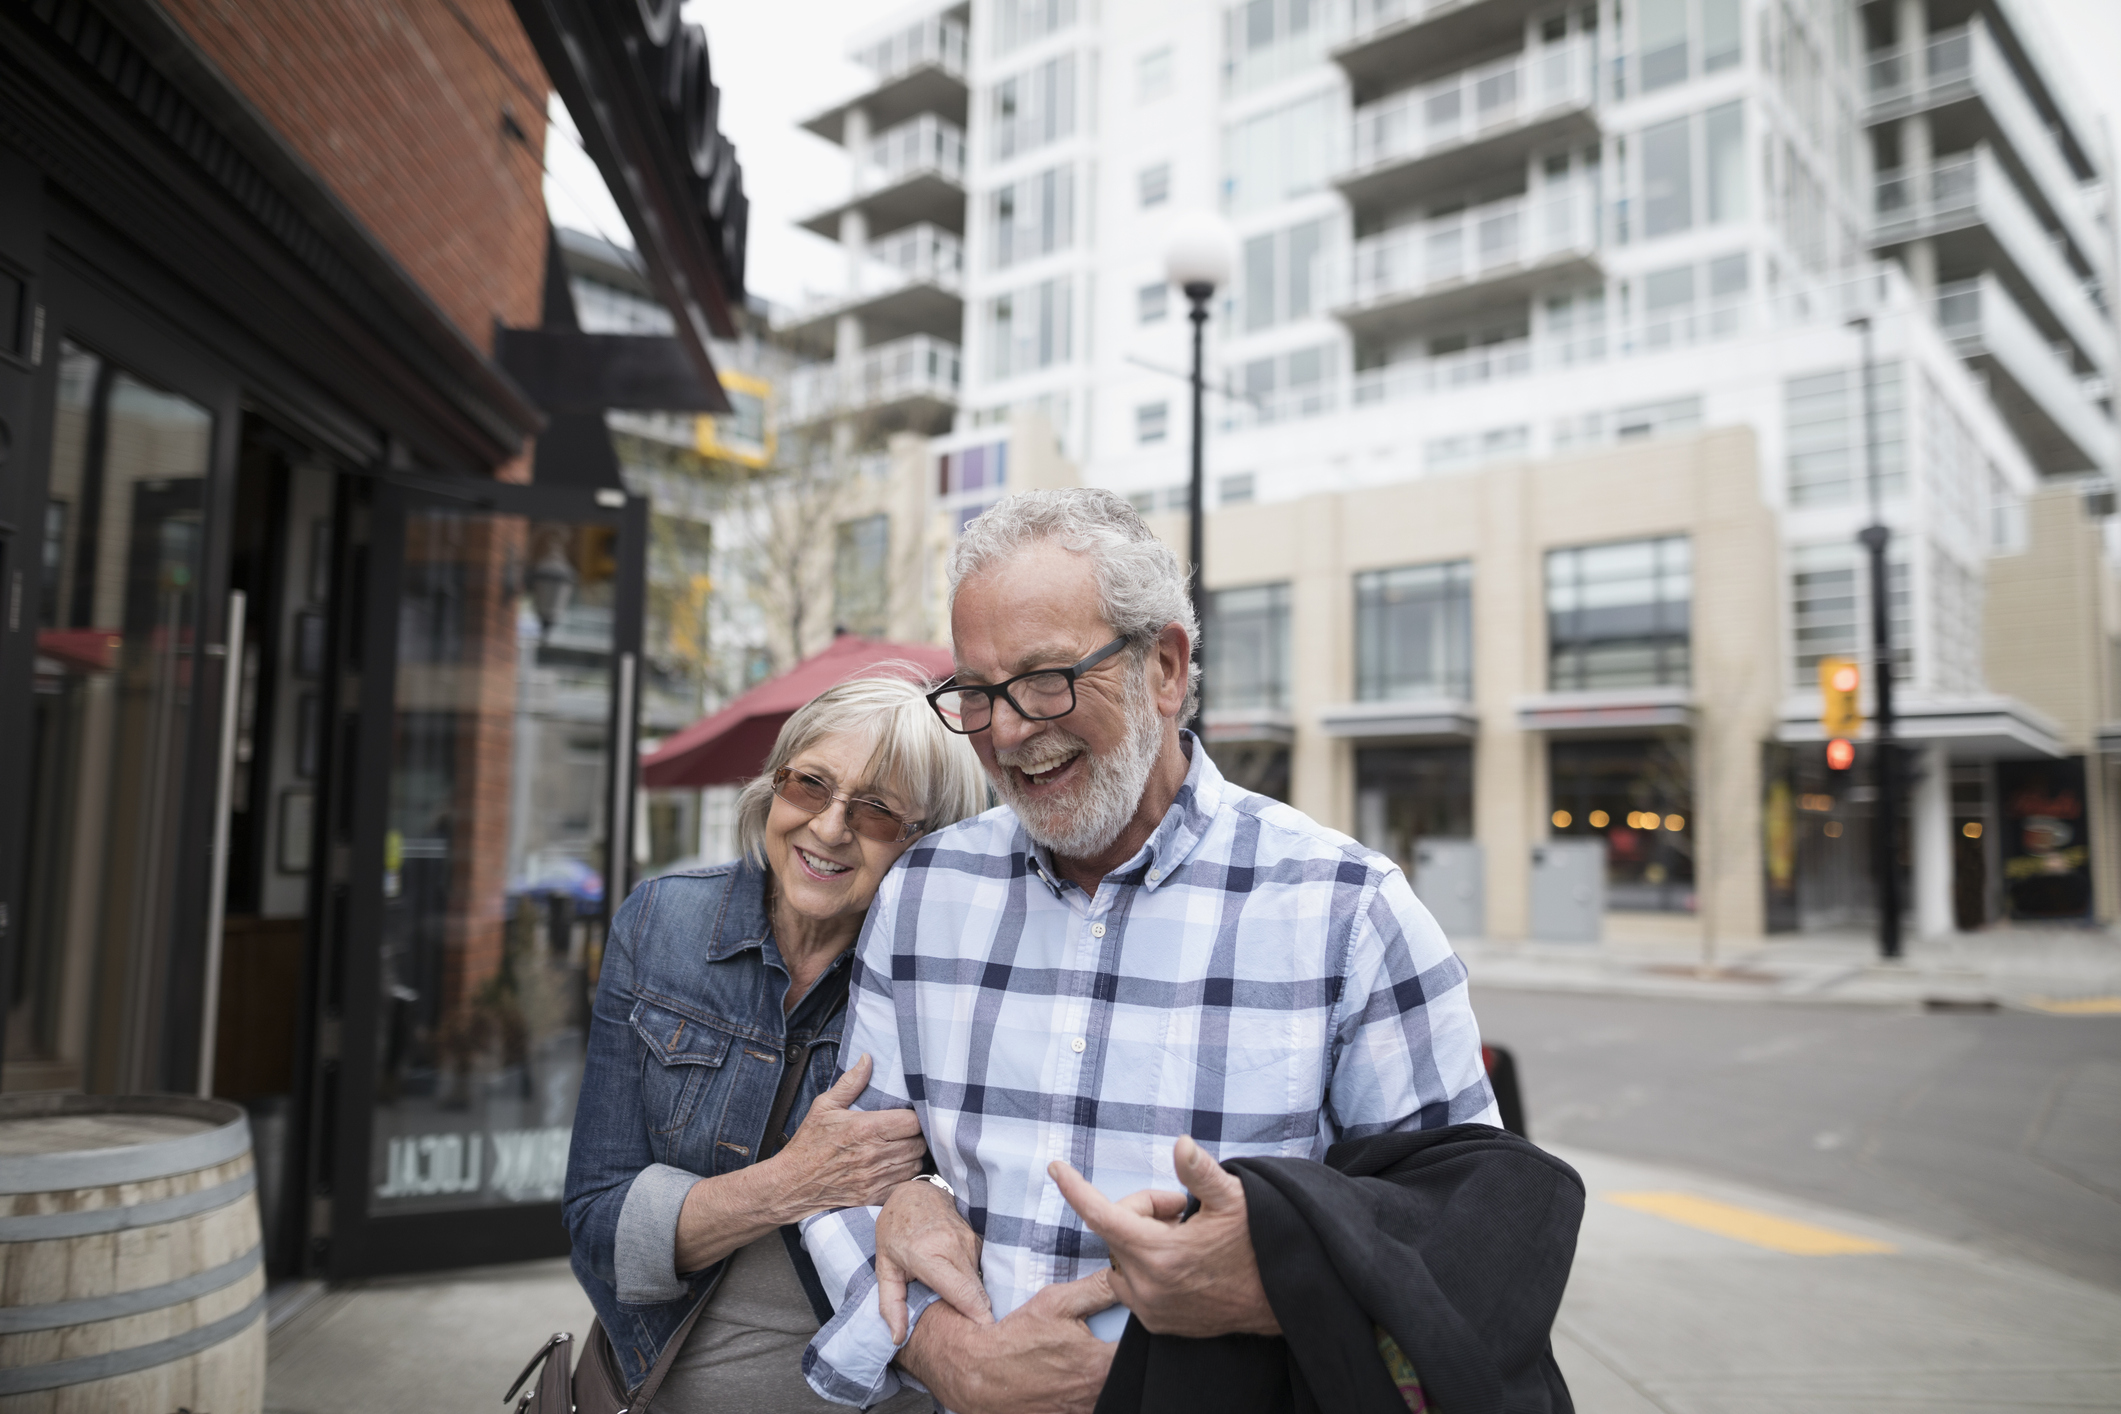 Smiling, affectionate senior couple walking on urban sidewalk